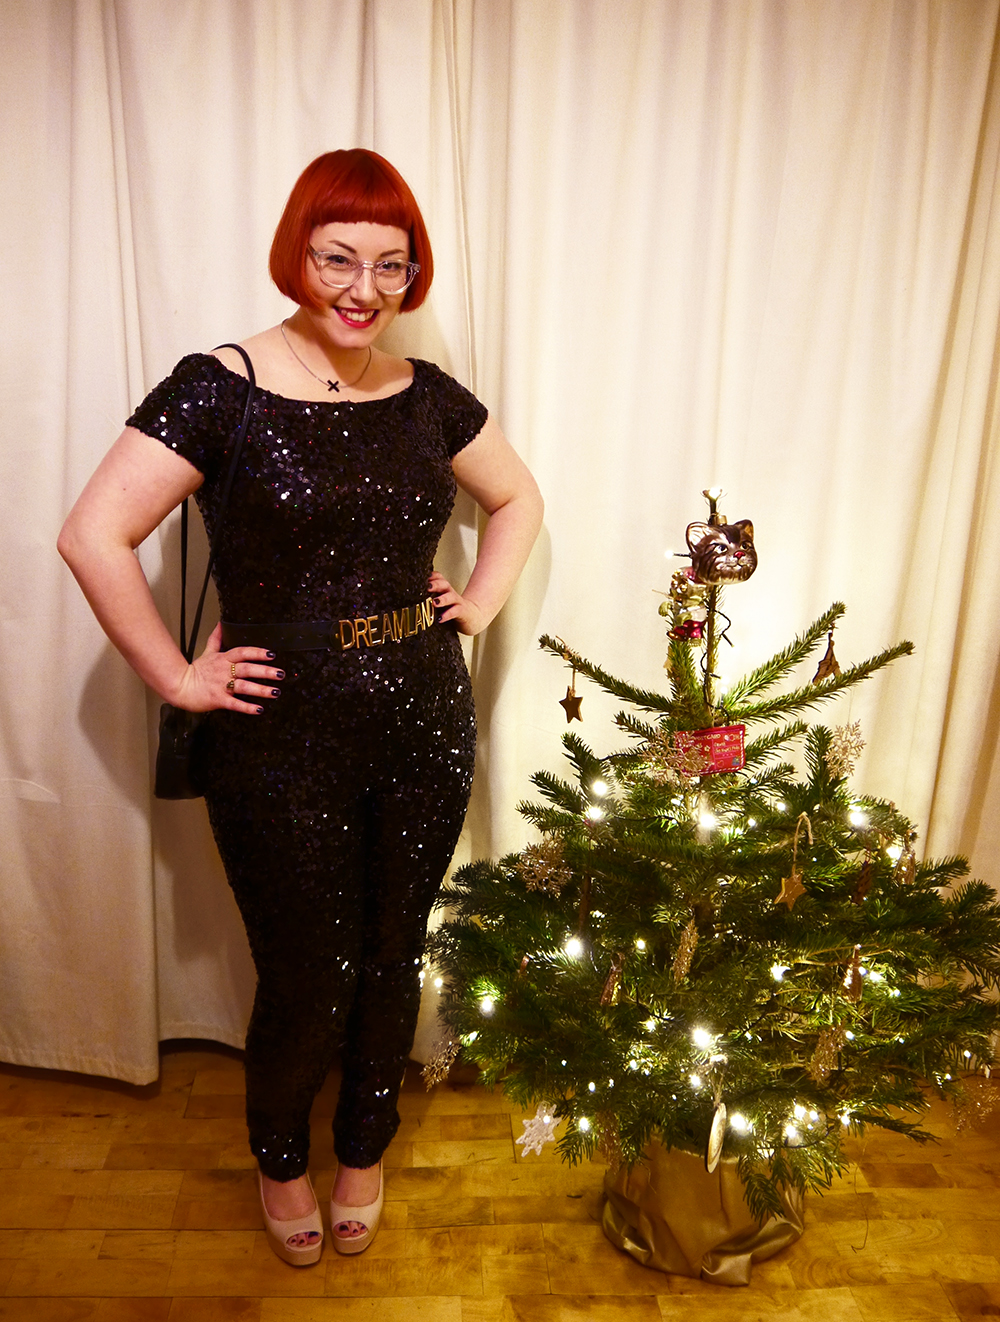 What Helen Wore, Styled by Helen, New Year's eve outfit, hogmanay style, NYE style, 2016, sequin jumpsuit, French Connection, TK Maxx, Dreamland belt, party outfit, party style, sequin style, Little black dress alternative, festive party style, tatty devine kiss necklace, new look platform shoes, 70s sequin style, red head, scottish blogger, blogging duo, ginger bob, Iolla glasses, #seewithiolla, clear glasses